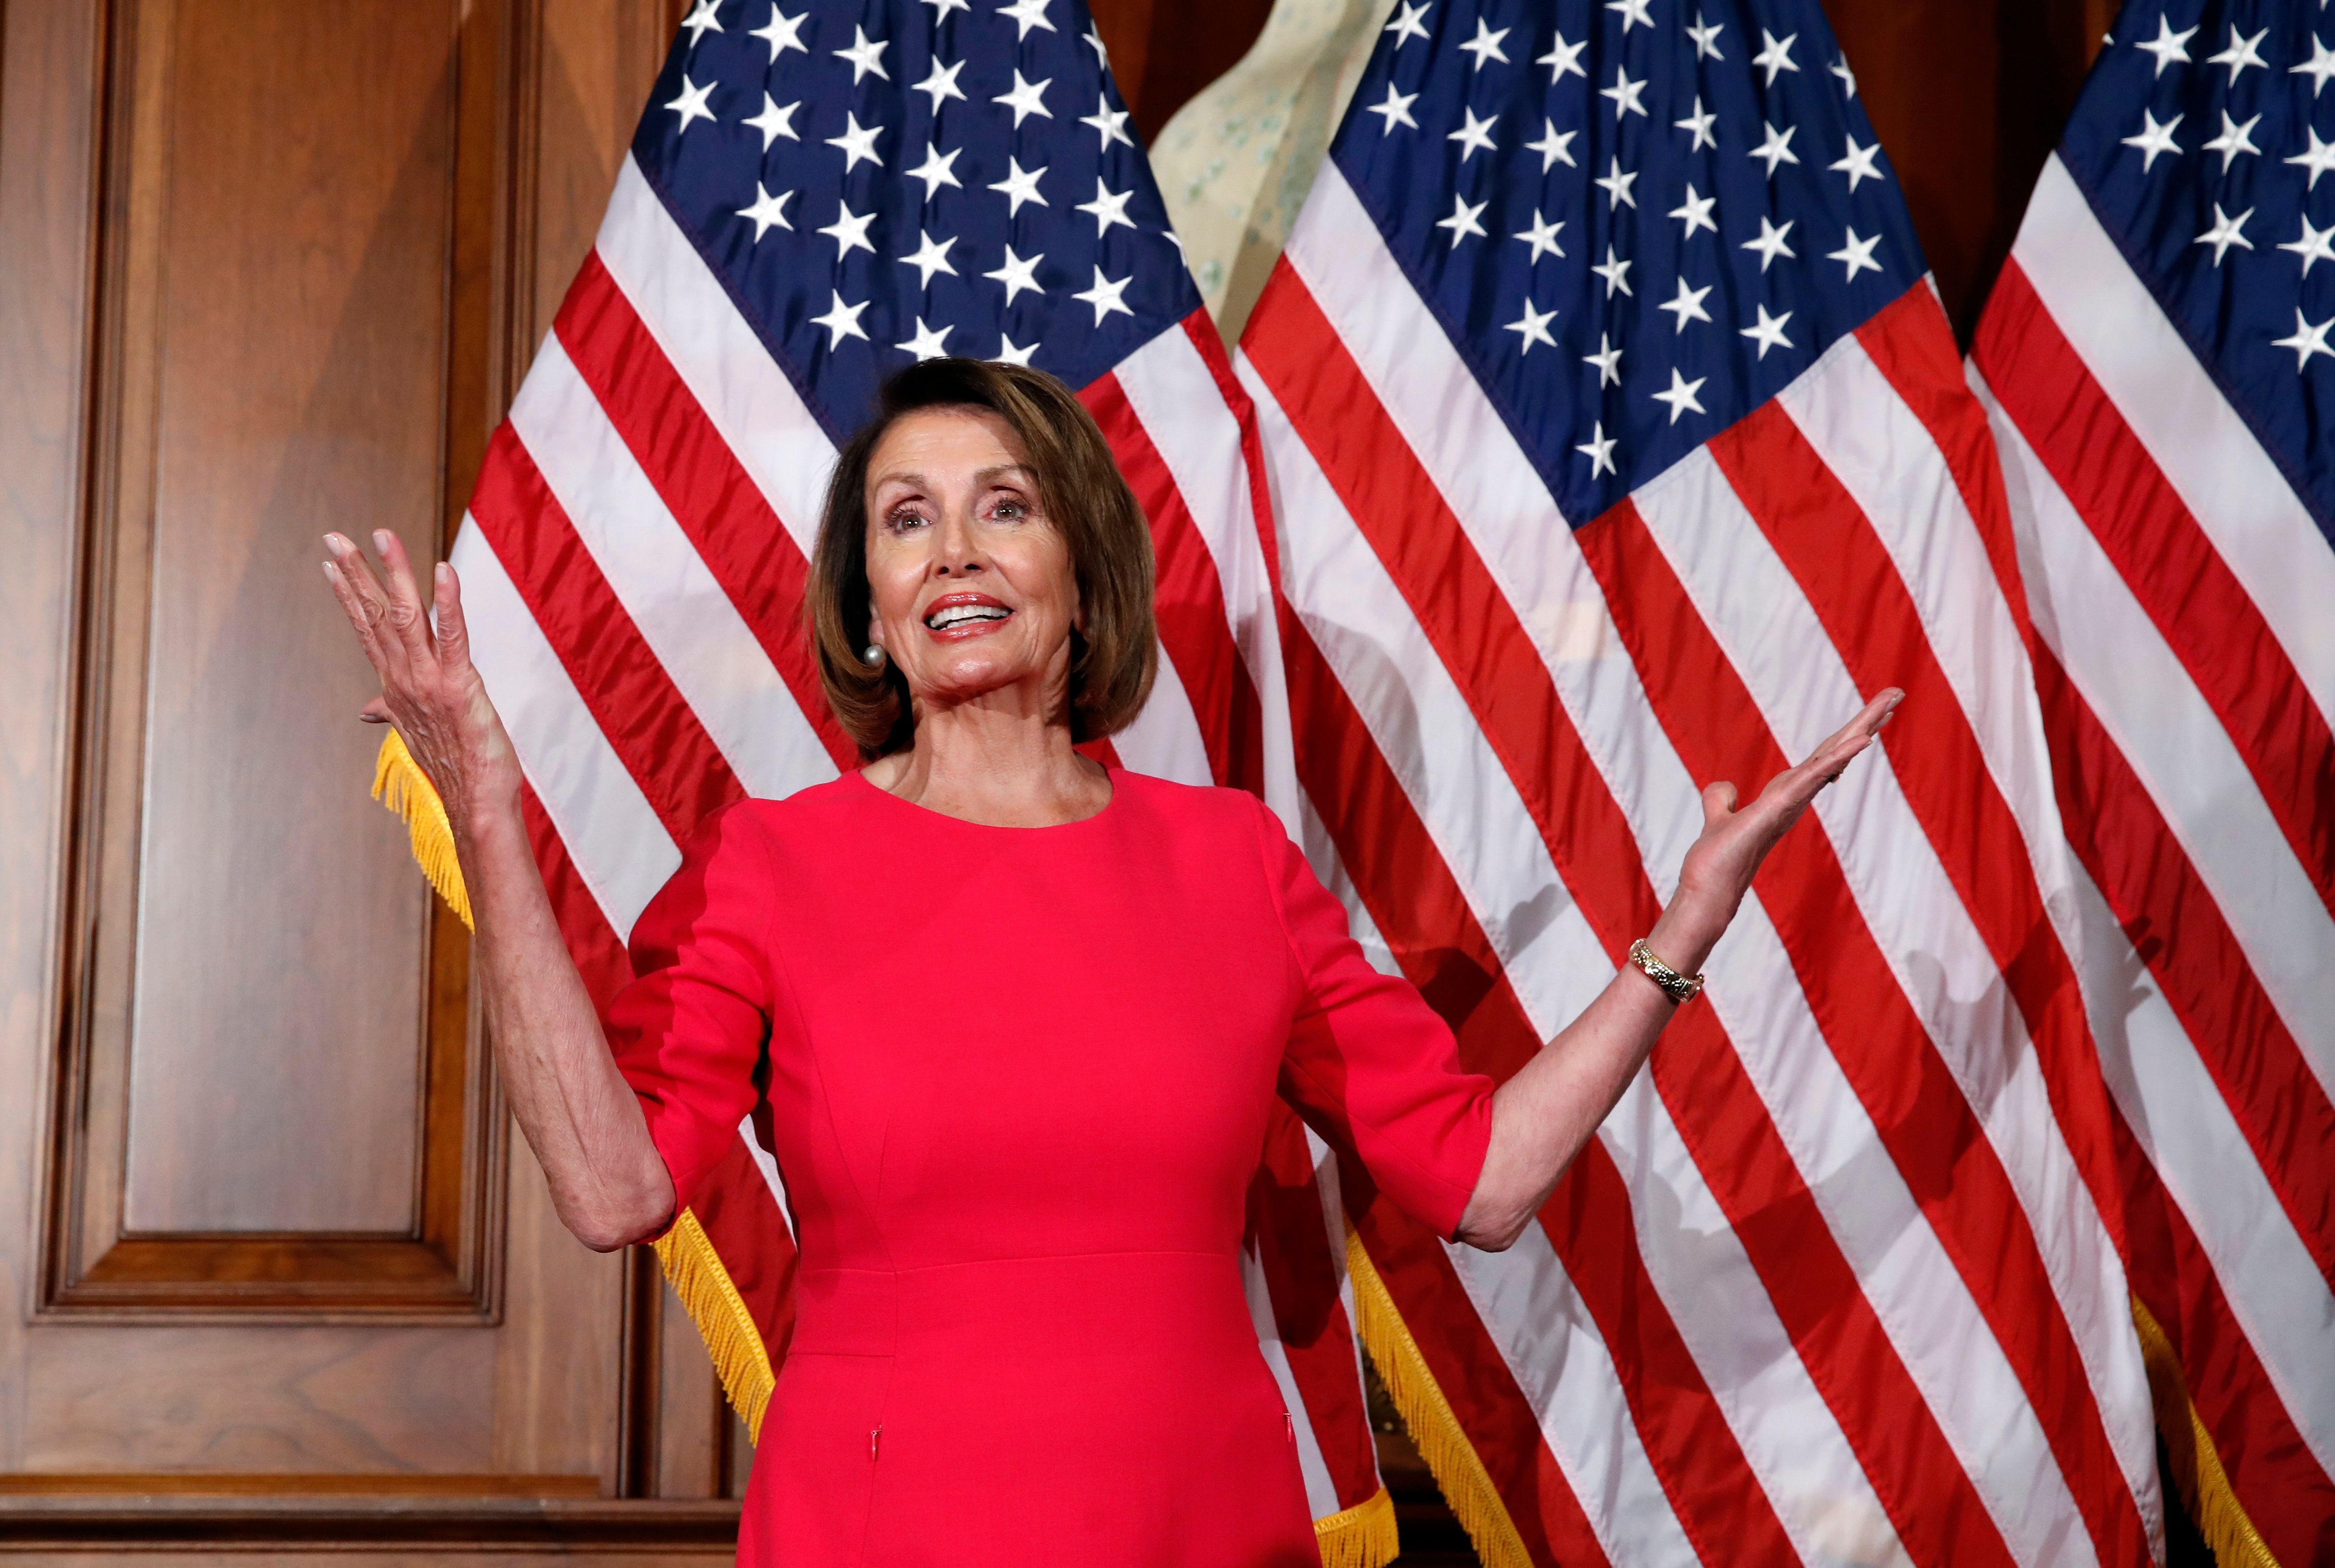 """In this Jan. 3, 2019, photo, House Speaker Nancy Pelosi of Calif., gestures before a ceremonial swearing-in on Capitol Hill in Washington, during the opening session of the 116th Congress. House Democrats are unveiling a comprehensive elections and ethics reform package that takes aim at what they call """"the culture of corruption in Washington"""" and reduces the role of money in politics. (AP Photo/Alex Brandon)"""